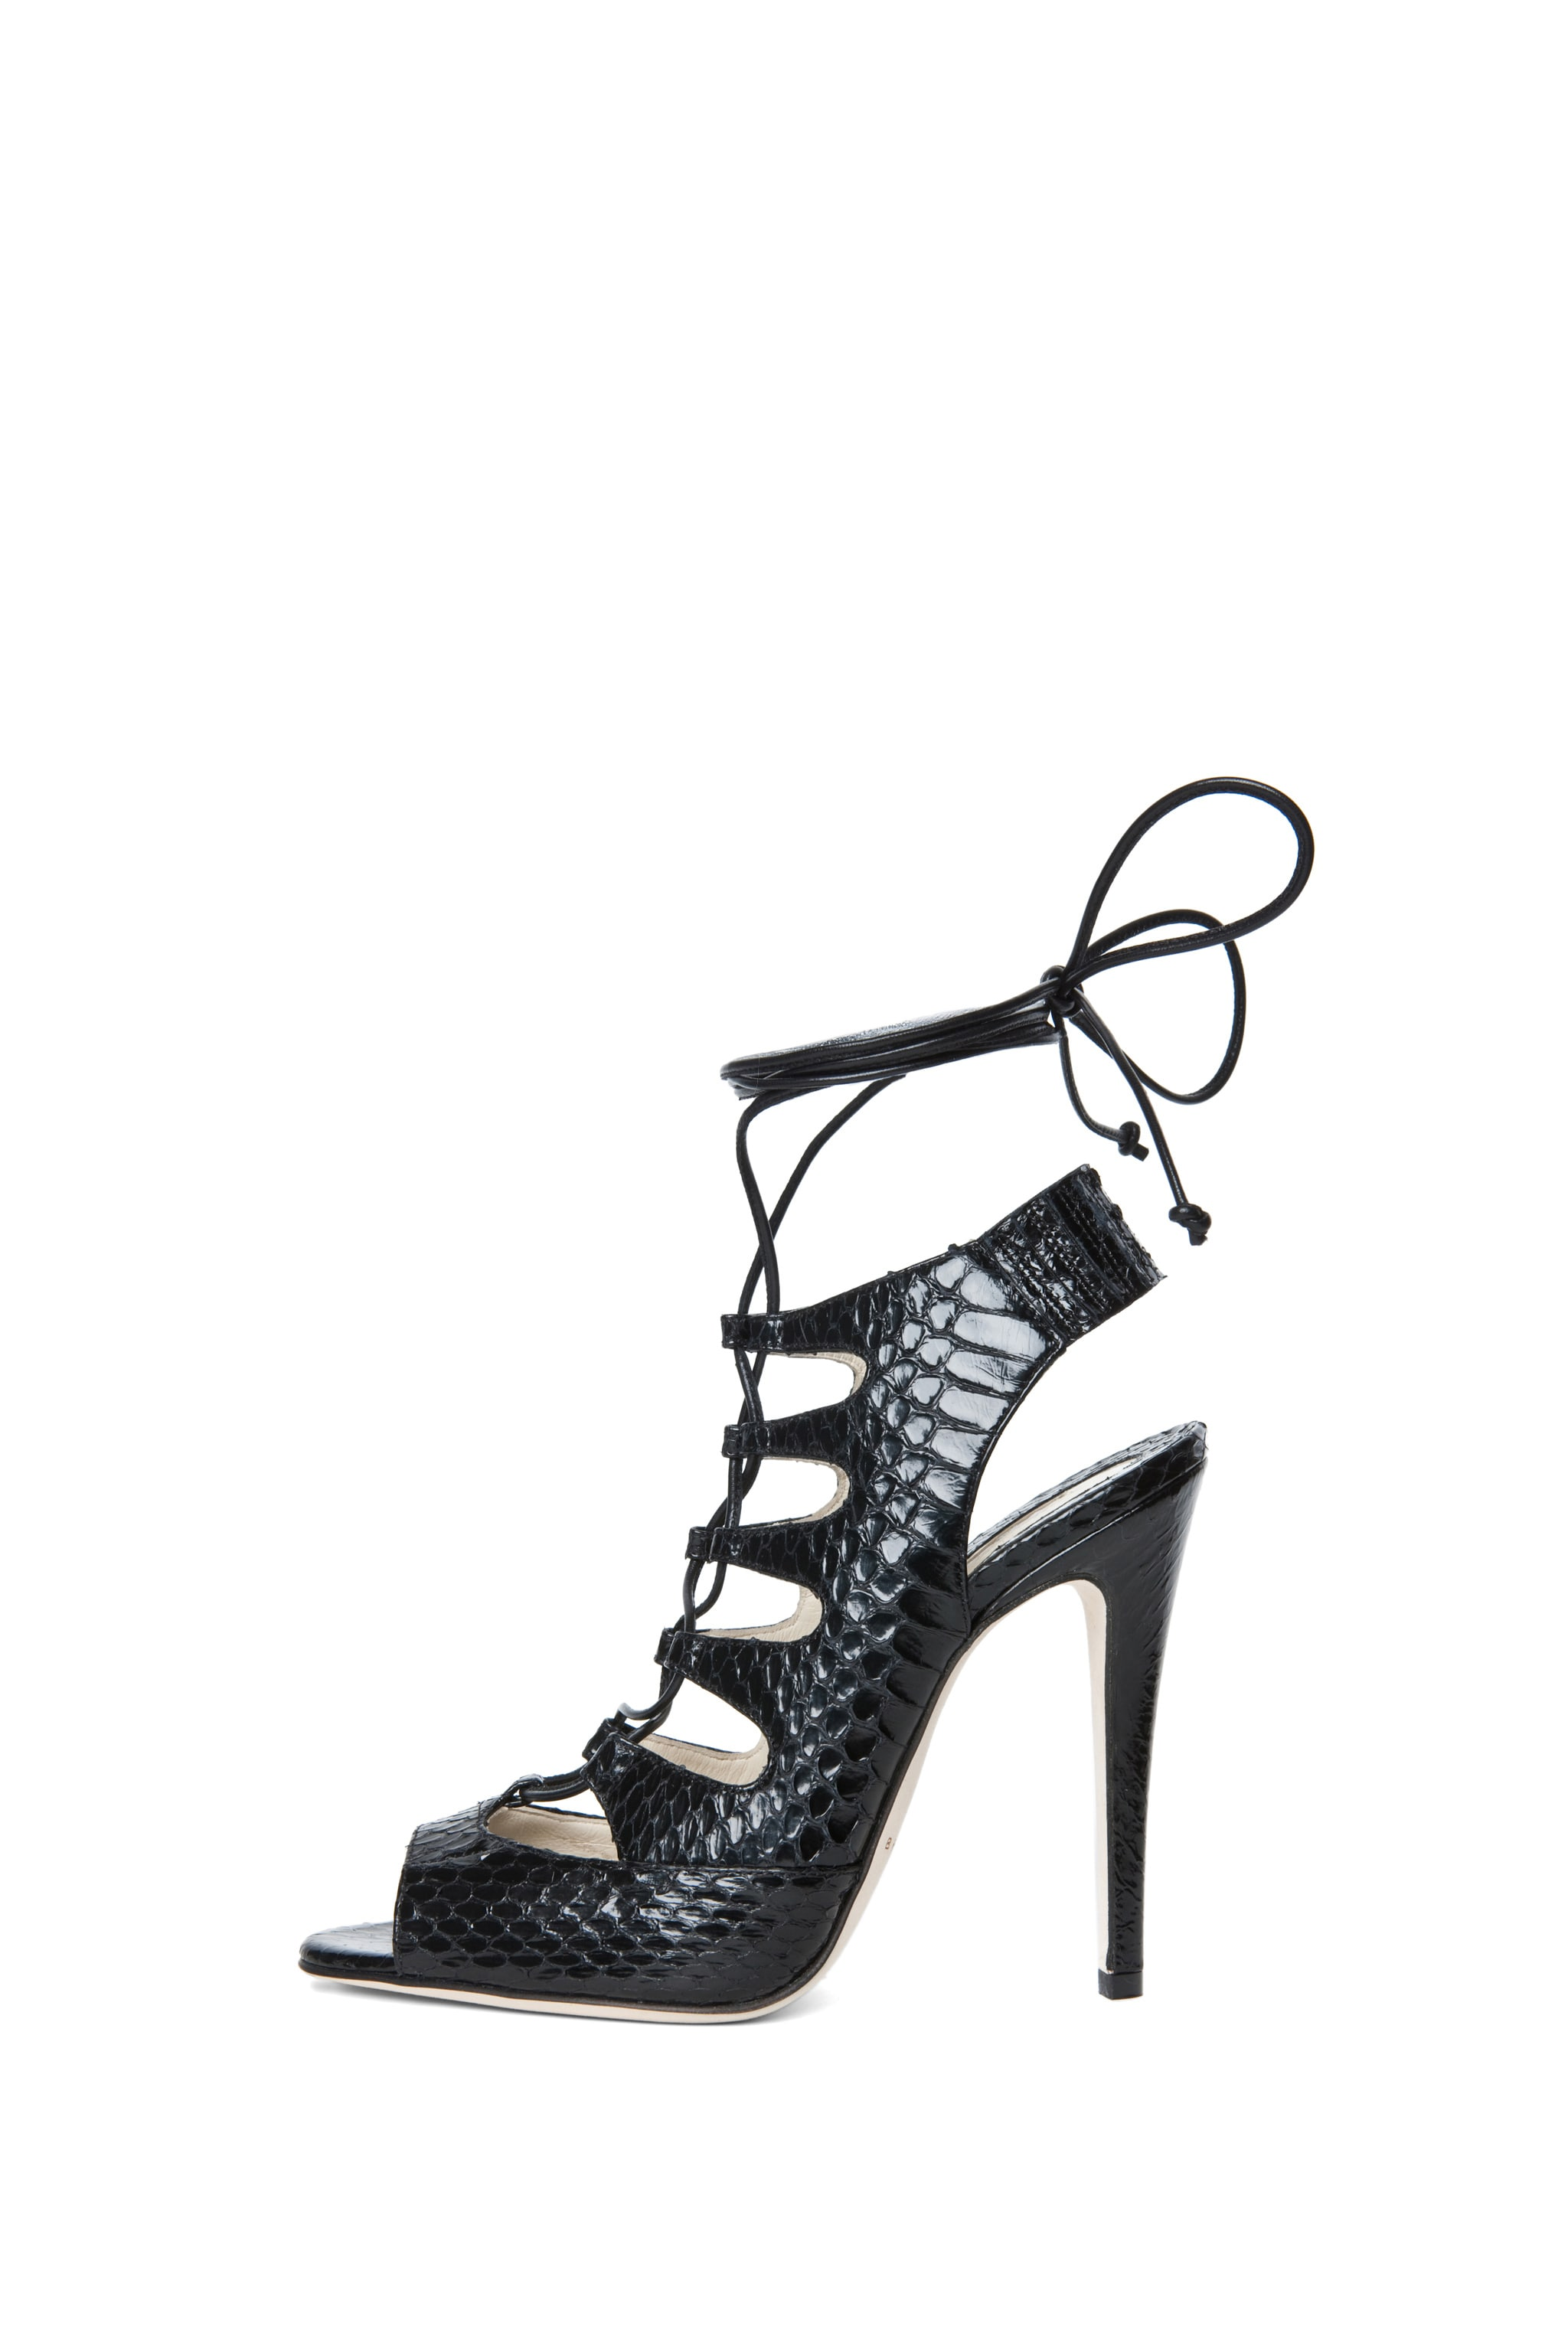 Image 1 of Brian Atwood Tie Me Up Snakeskin Lace Up Sandal in Black Snake